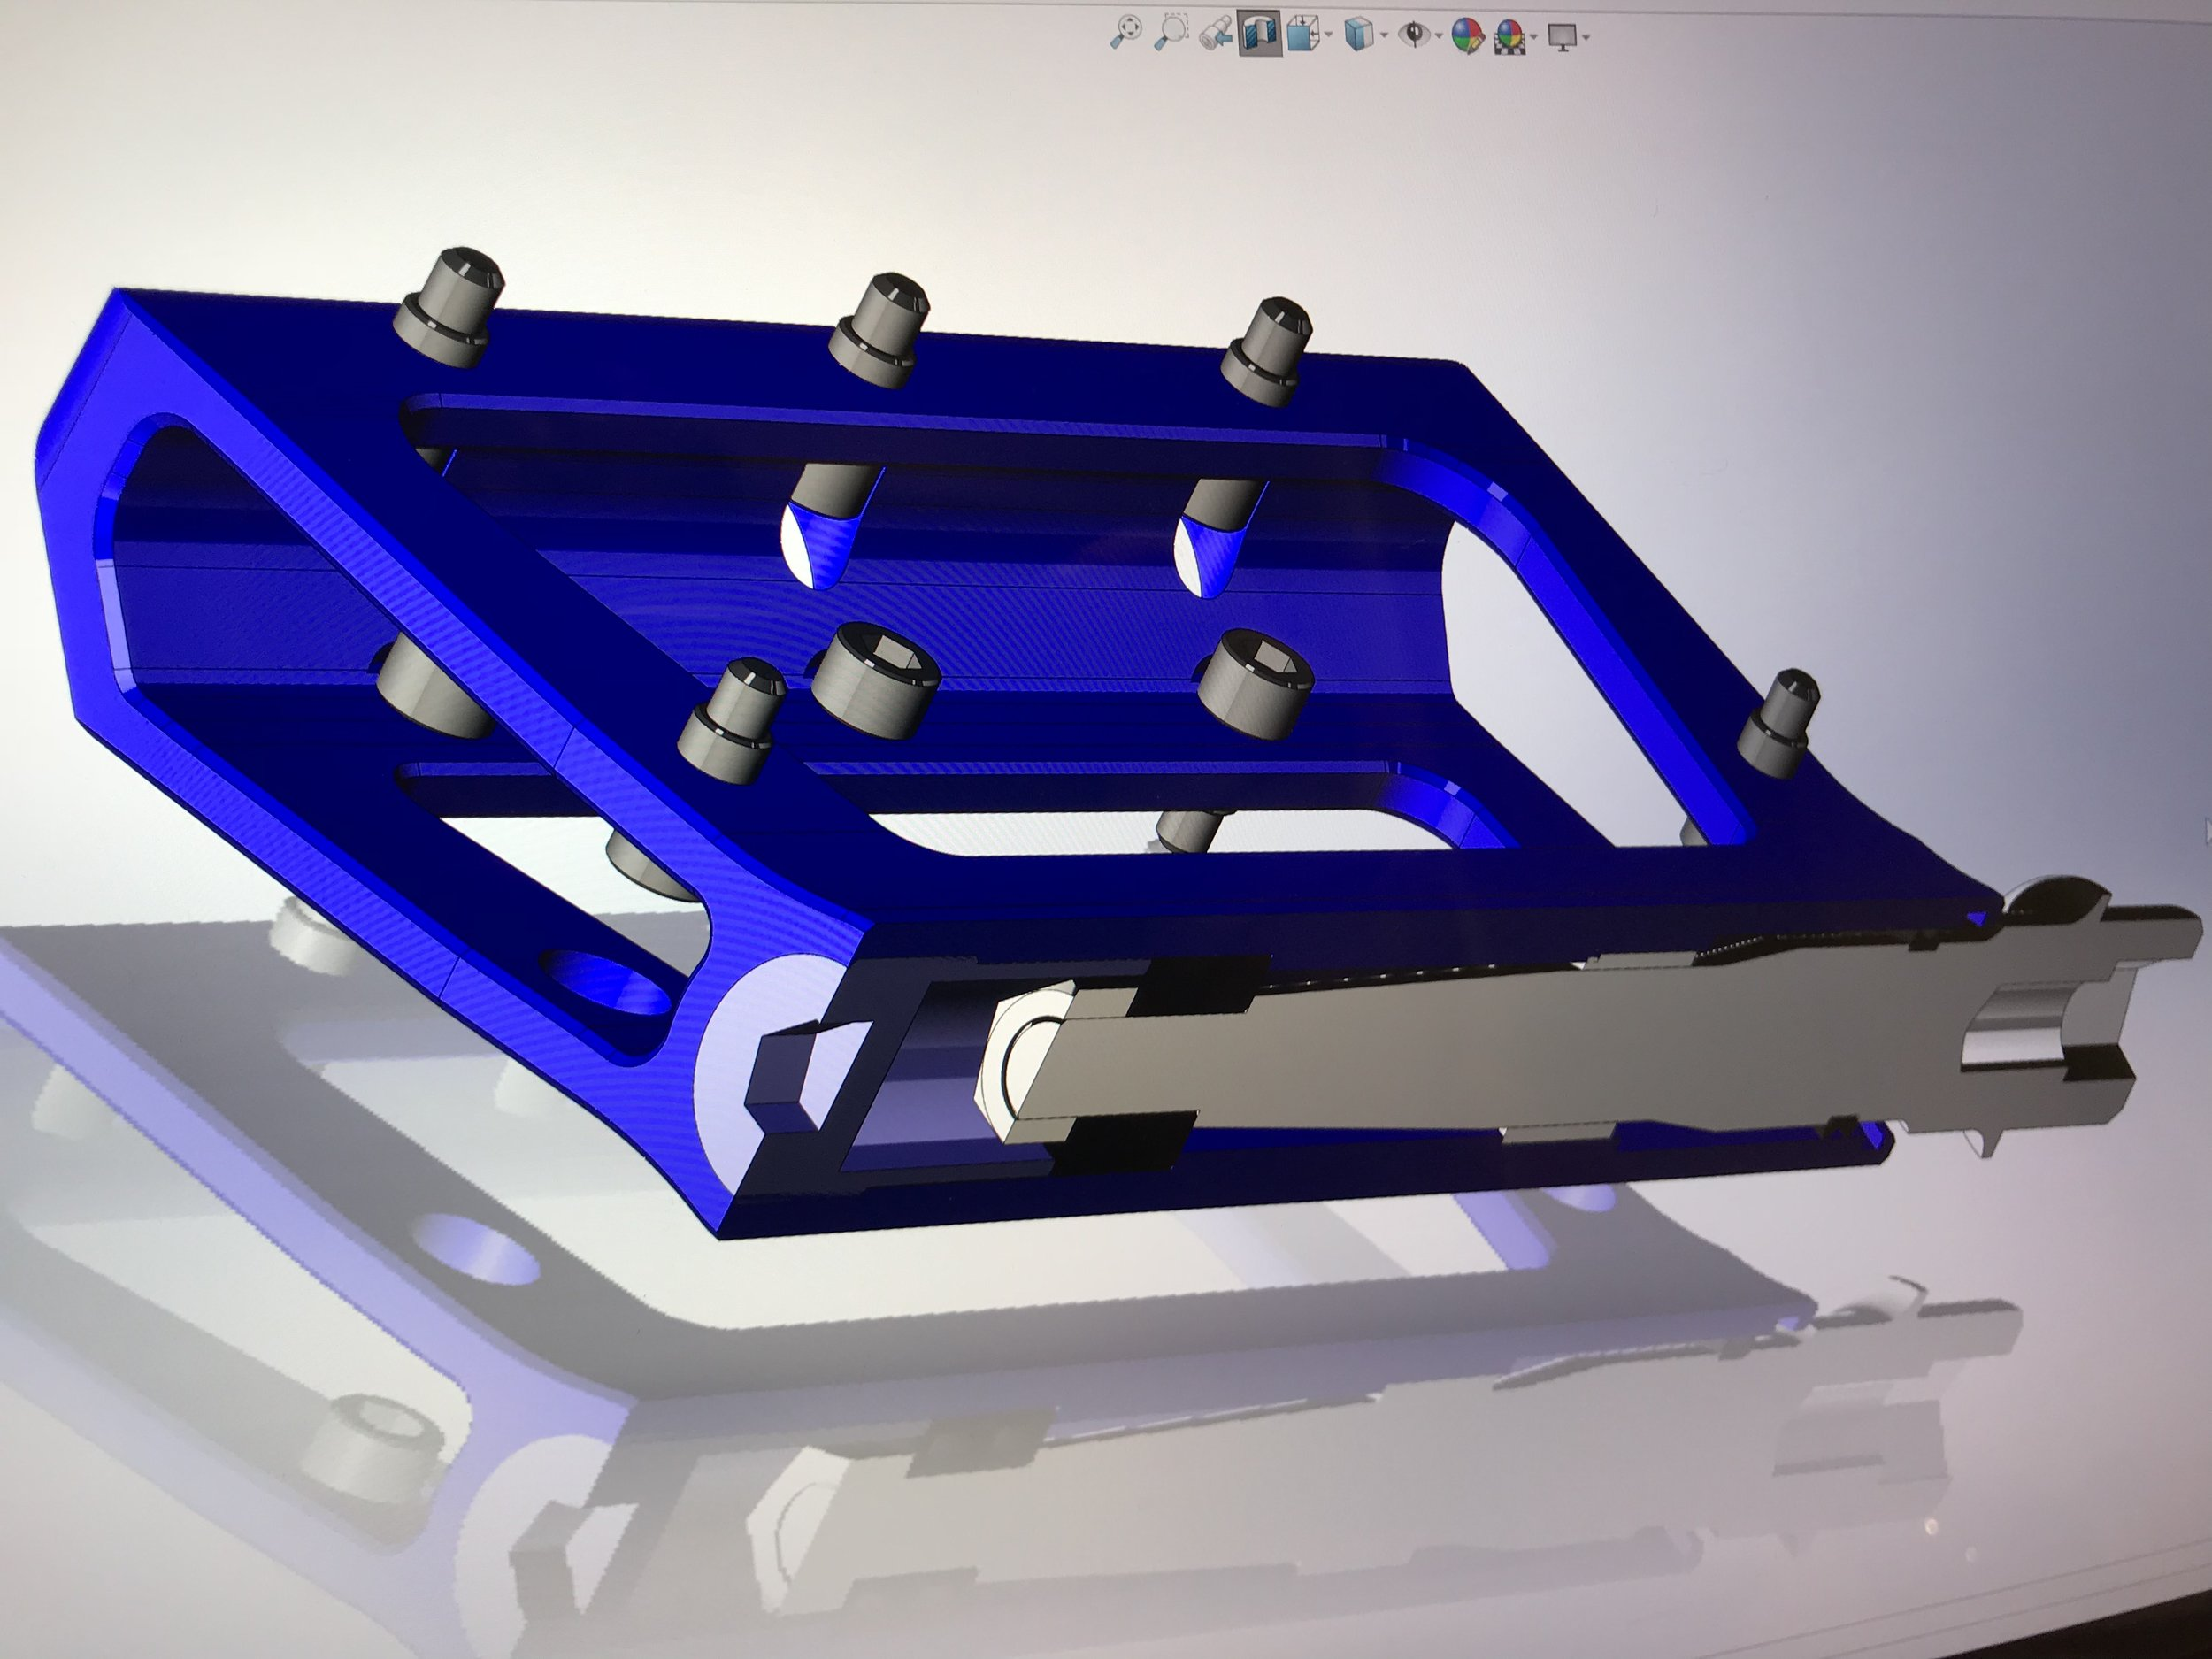 Specialist CAD/CAM Modelling Software - We use Solidworks and Autodesk CAD/CAM software for designing and creating machine code.We only program offline due the complex nature of the products we manufacture with code often in hundreds of thousands of lines per program.